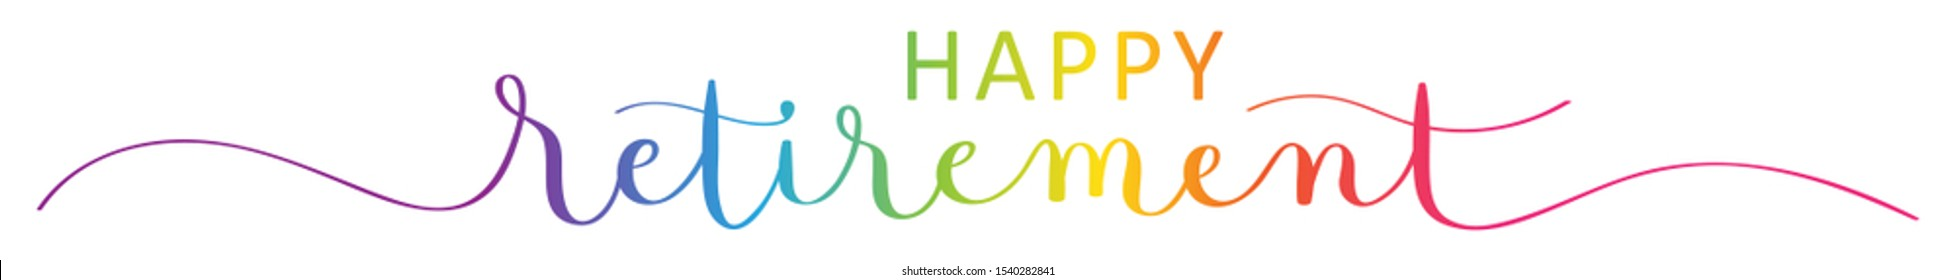 HAPPY RETIREMENT rainbow-colored vector brush calligraphy banner with swashes